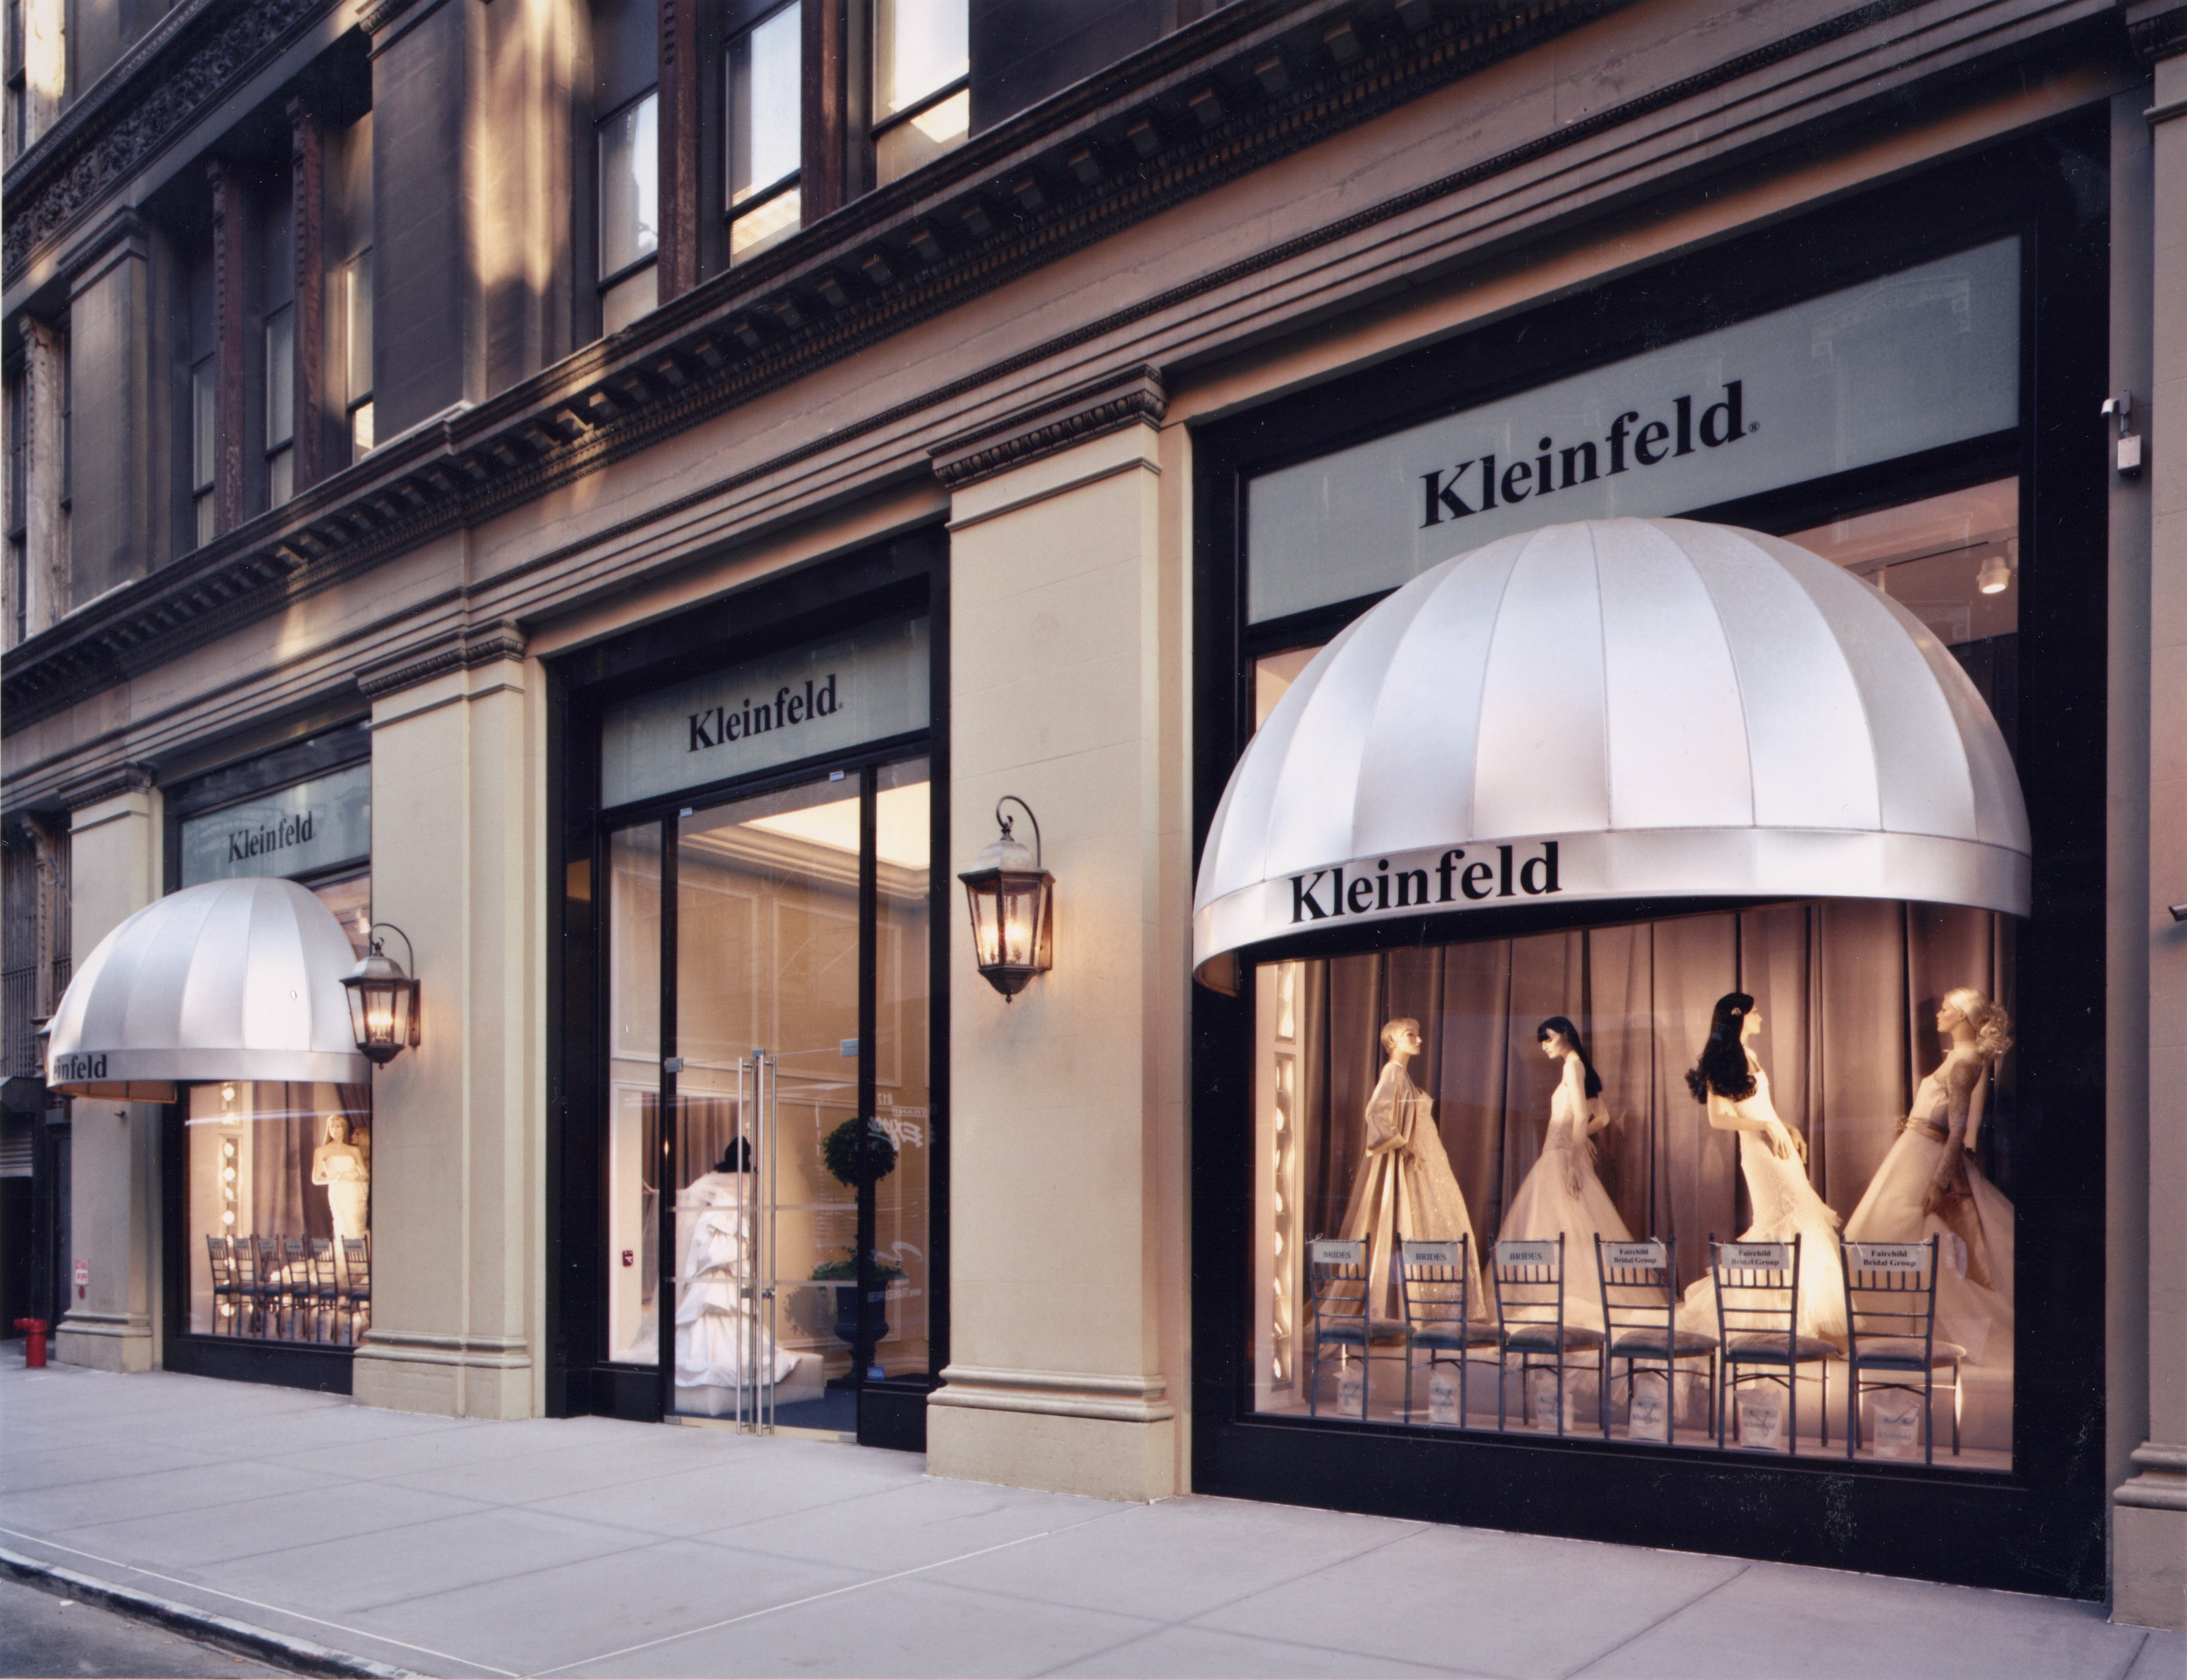 How to Visit Kleinfeld Bridal, with the largest wedding dress selection, as a fan of Say Yes to the Dress